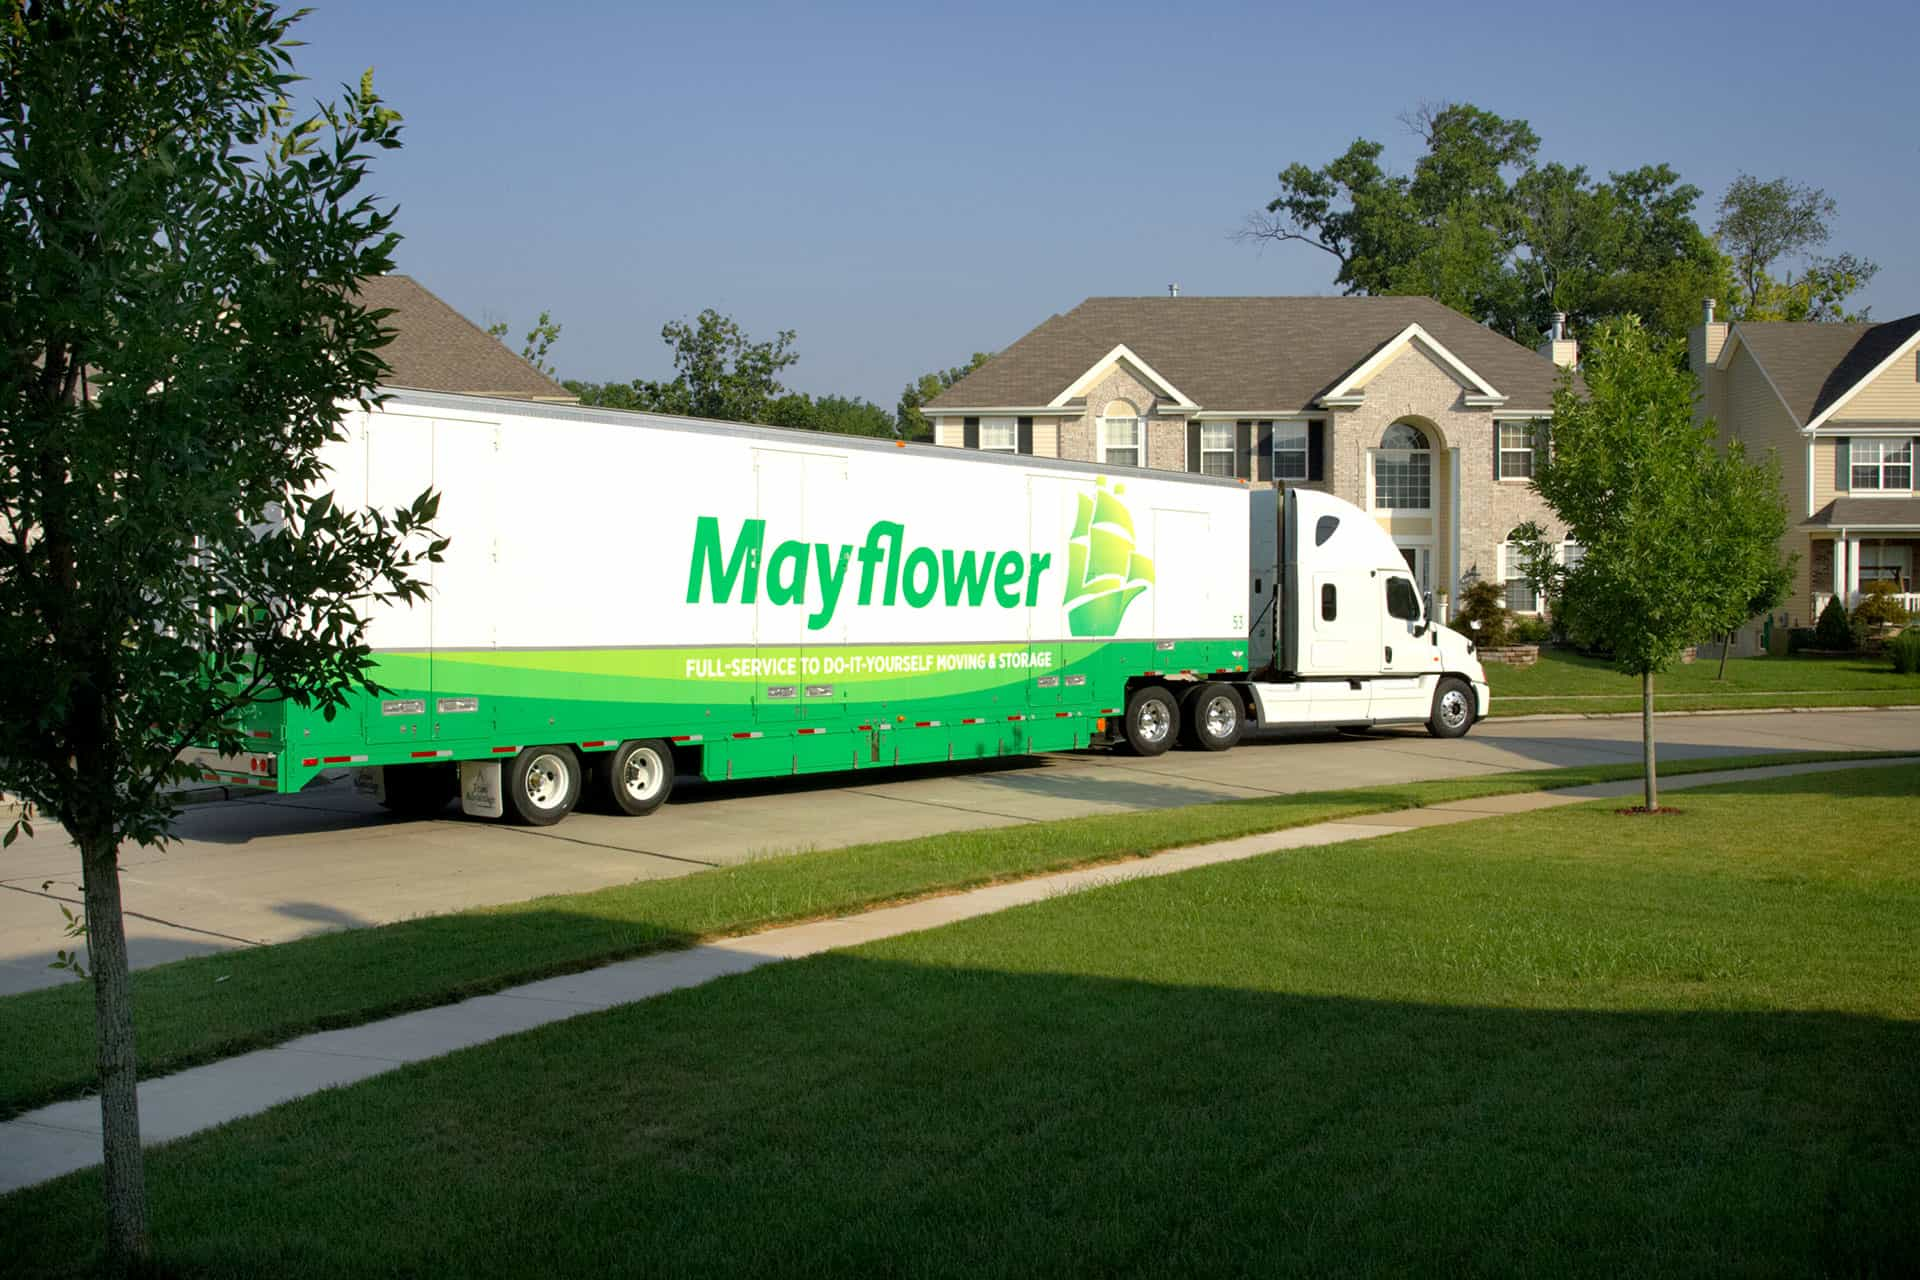 maflower truck near home